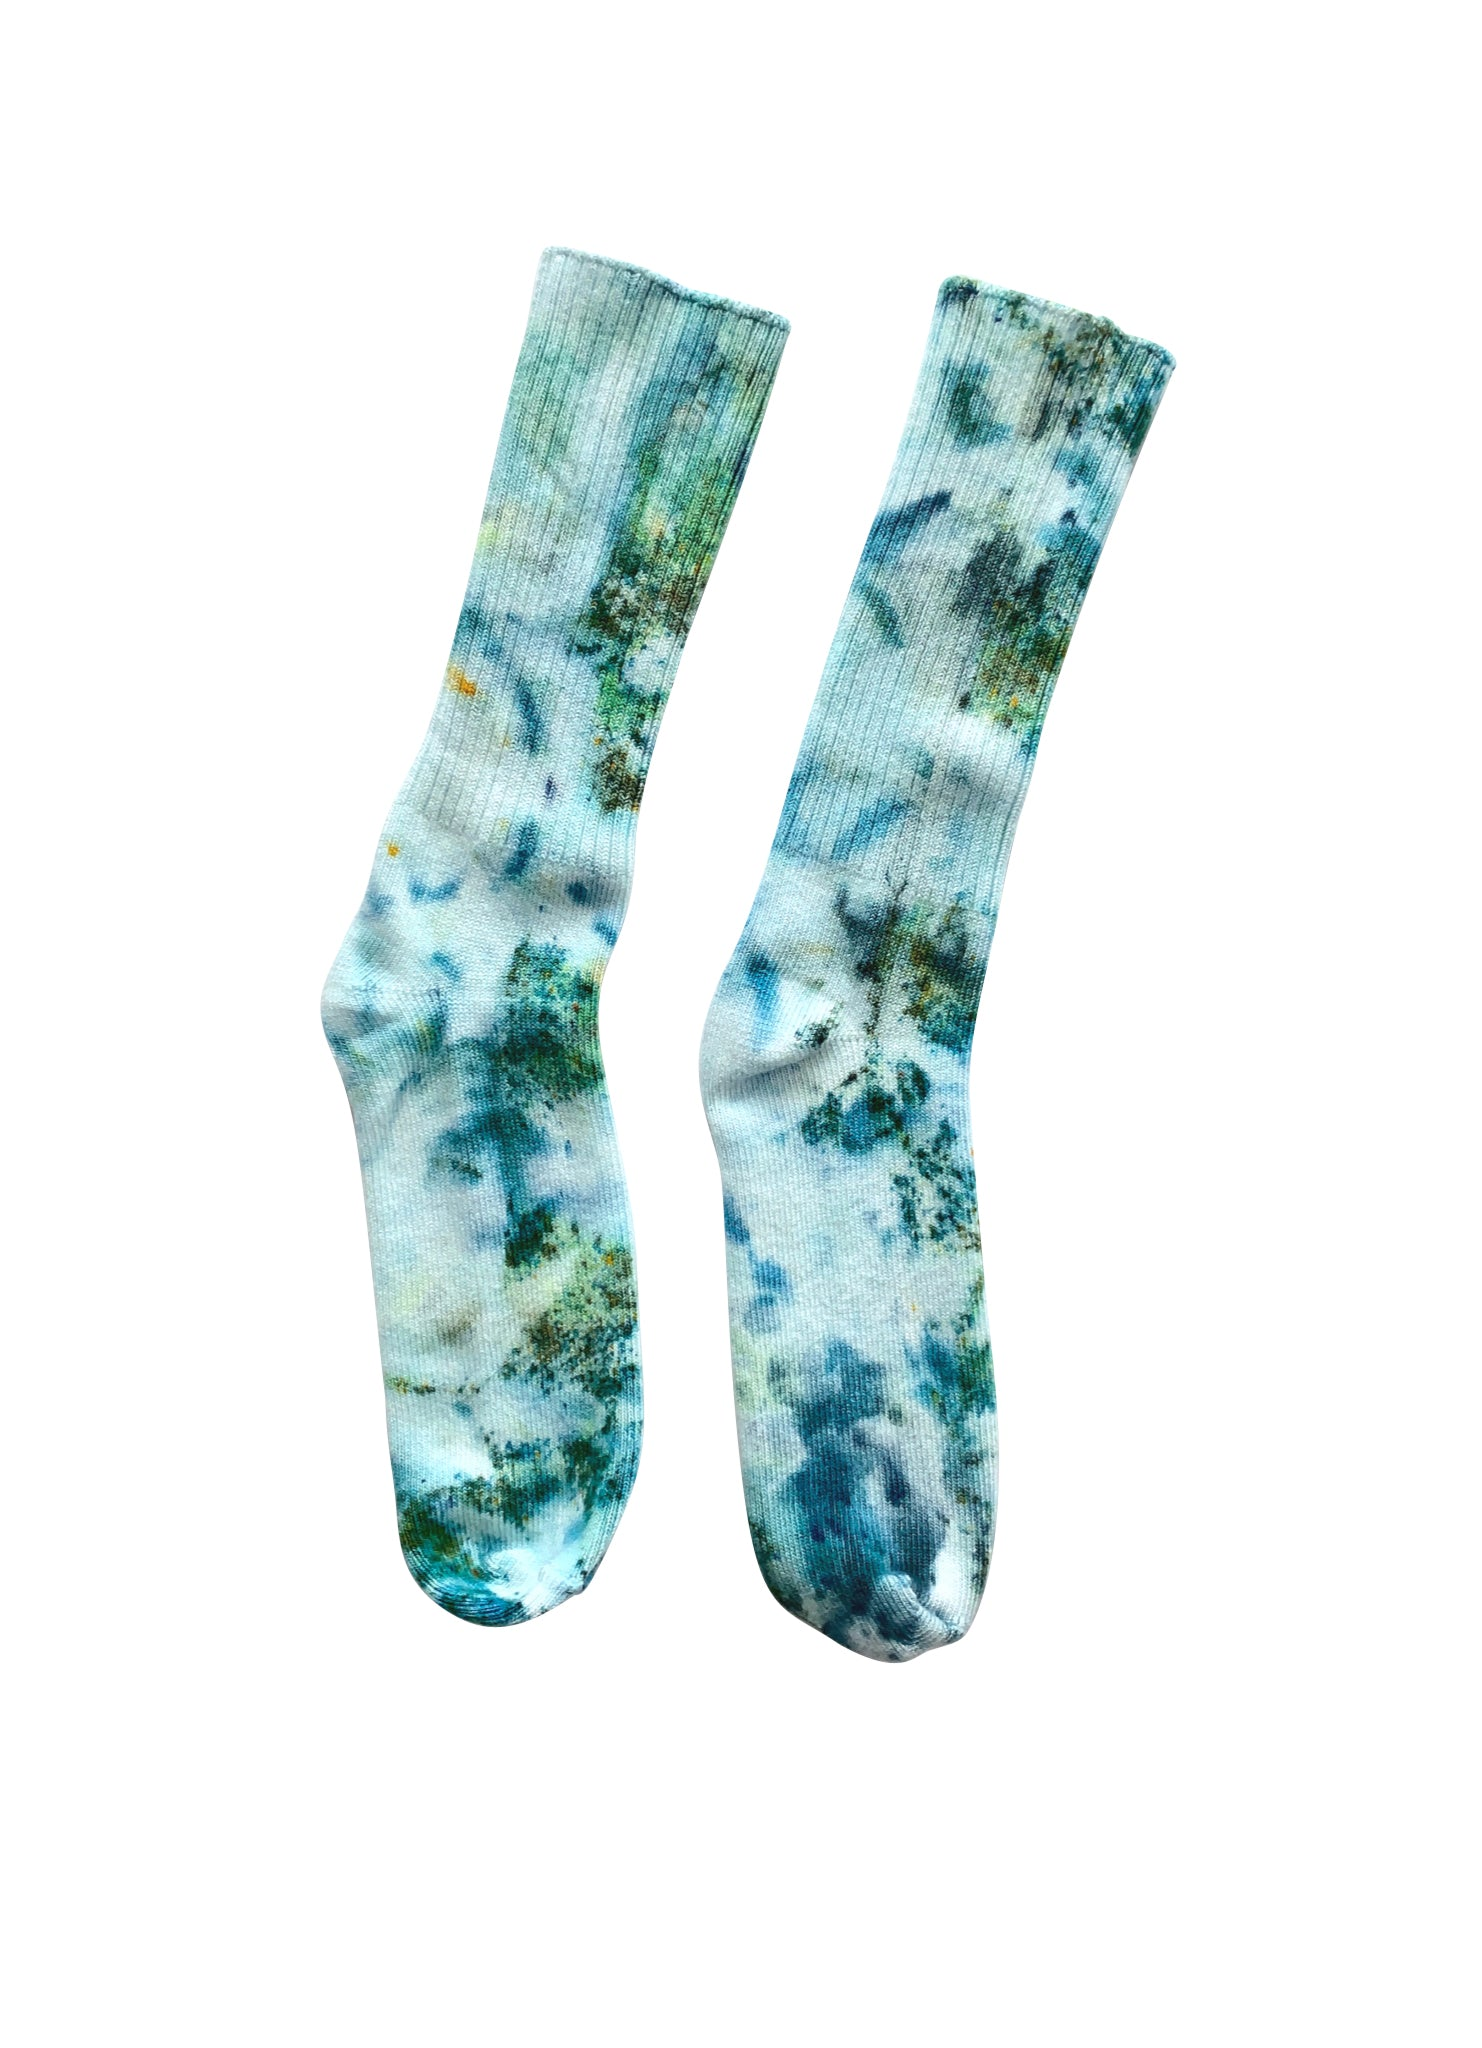 Hand Dyed Bamboo Rayon Crew Socks- Sea Glass - Dyetology